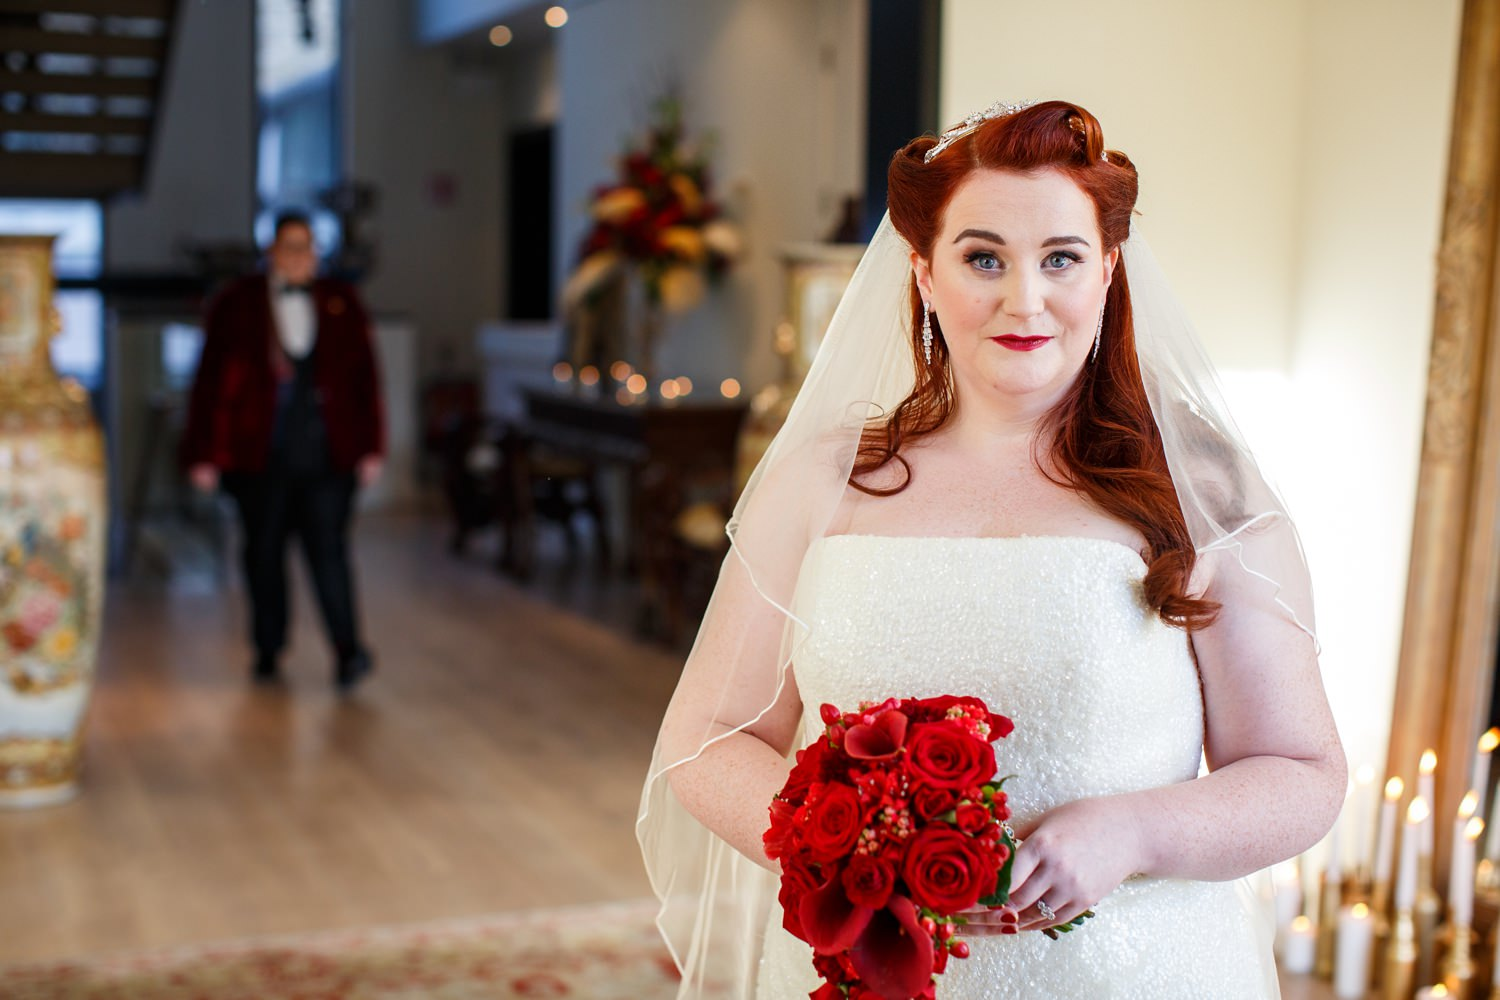 Elisha-Clarke-Photography-Dublin-City-Wedding_00180.jpg